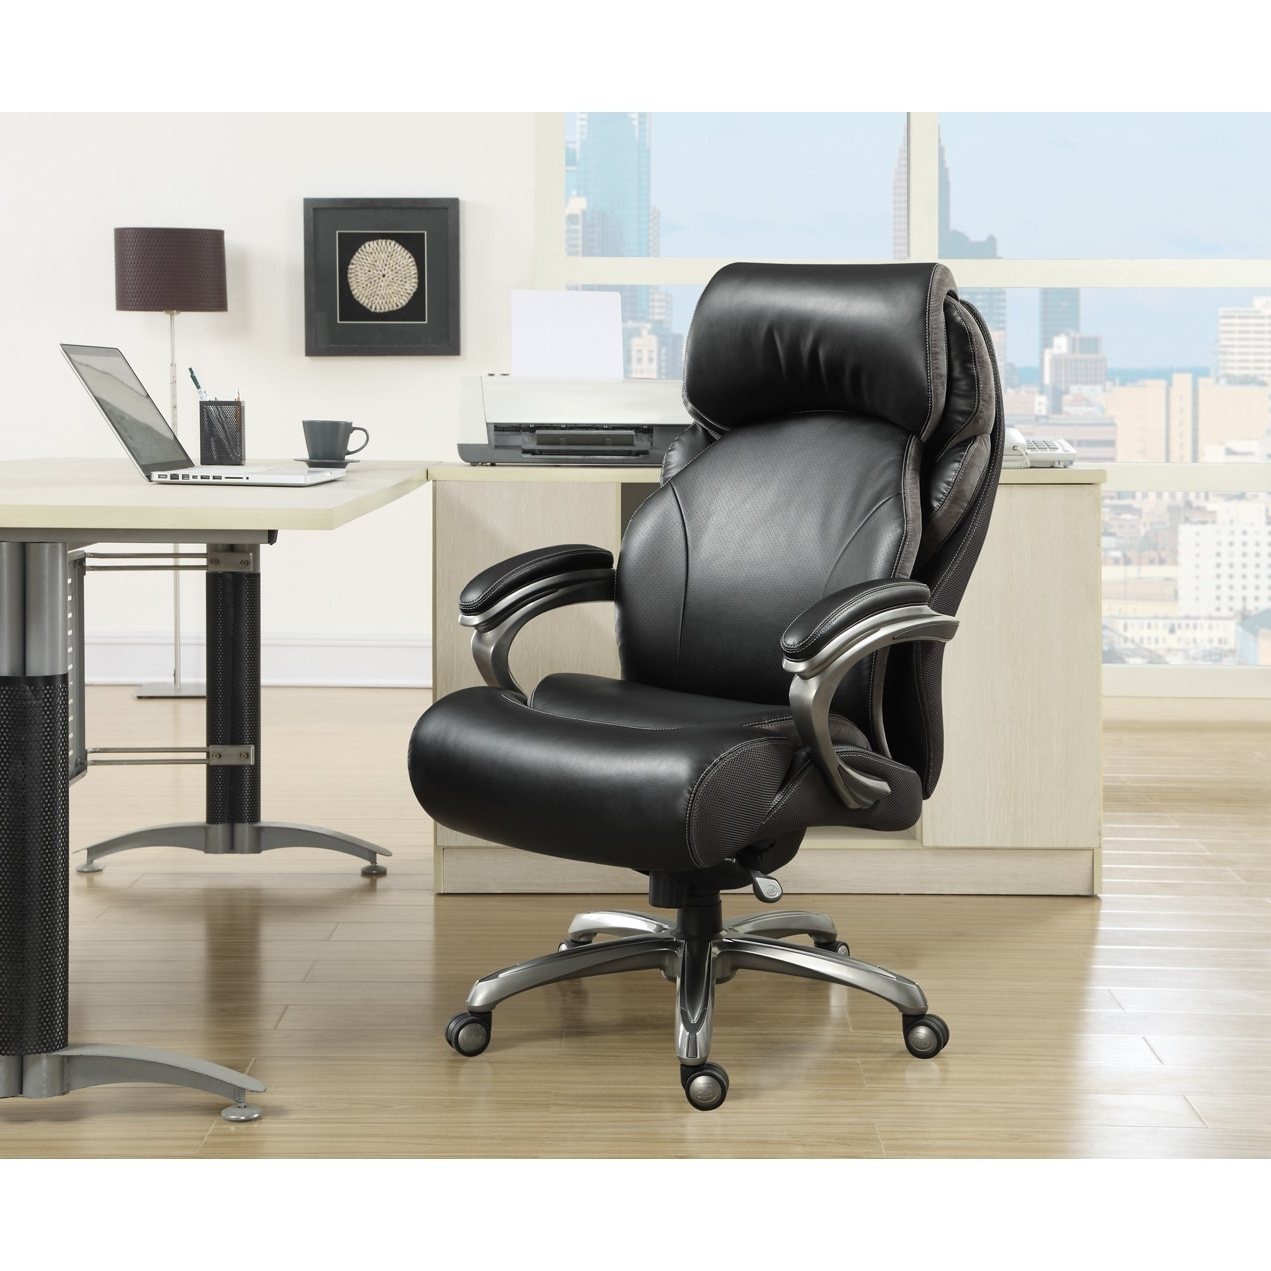 Big And Tall Executive Office Chairs Intended For Favorite Serta Big & Tall Tranquility Smart Layers Executive Office Chair (View 2 of 20)